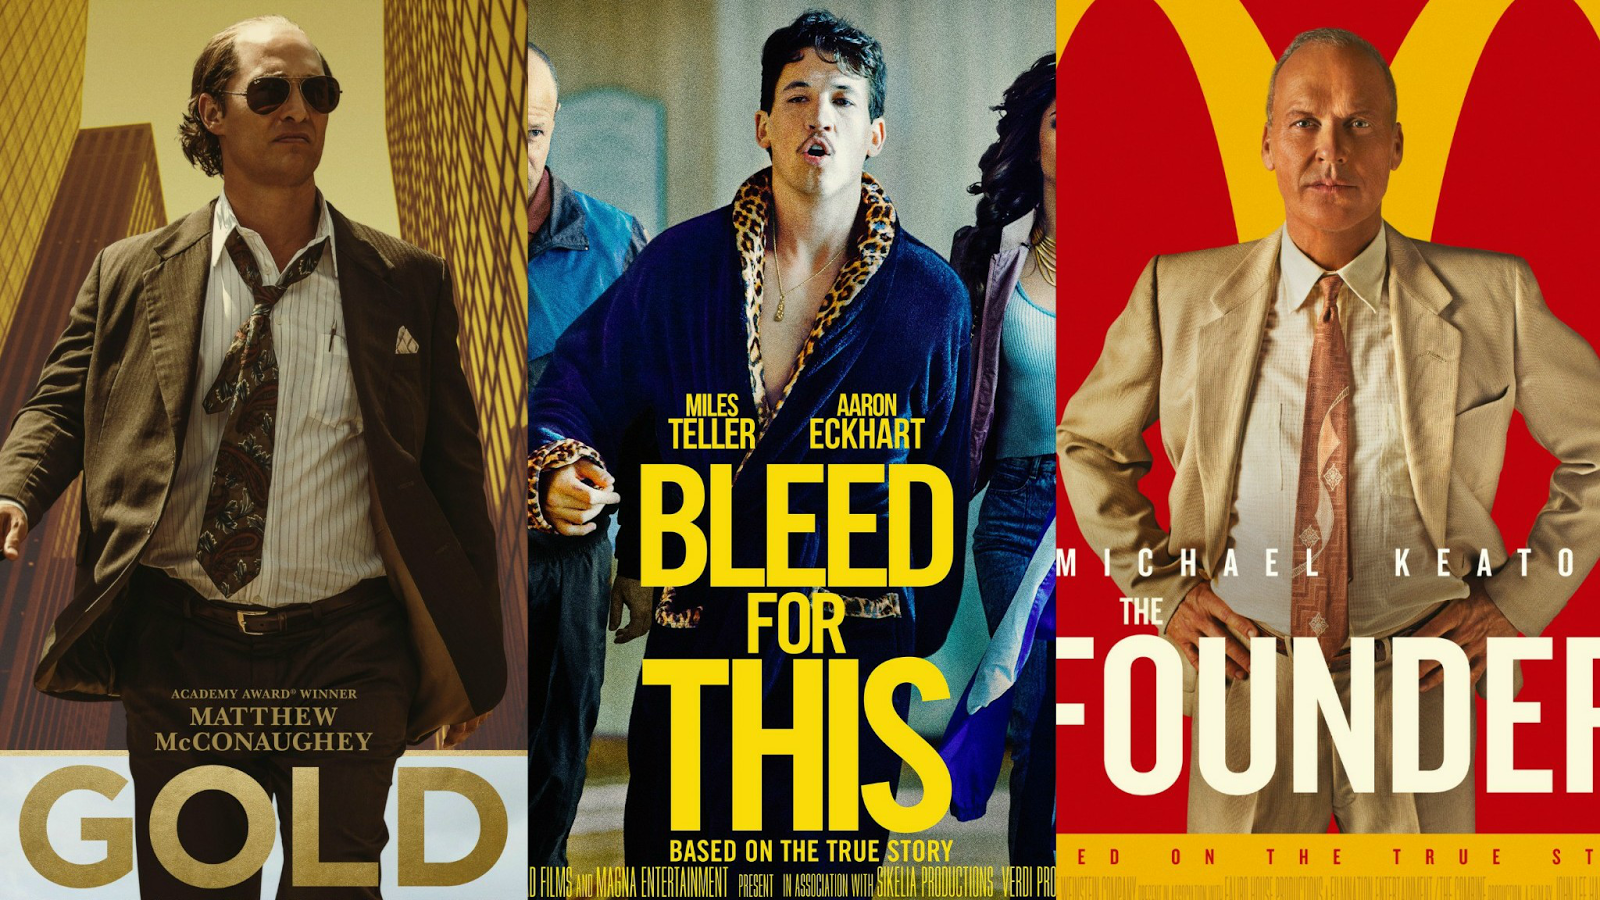 The movie posters for the 2016 films 'Gold', 'Bleed for This' and 'The Founder'